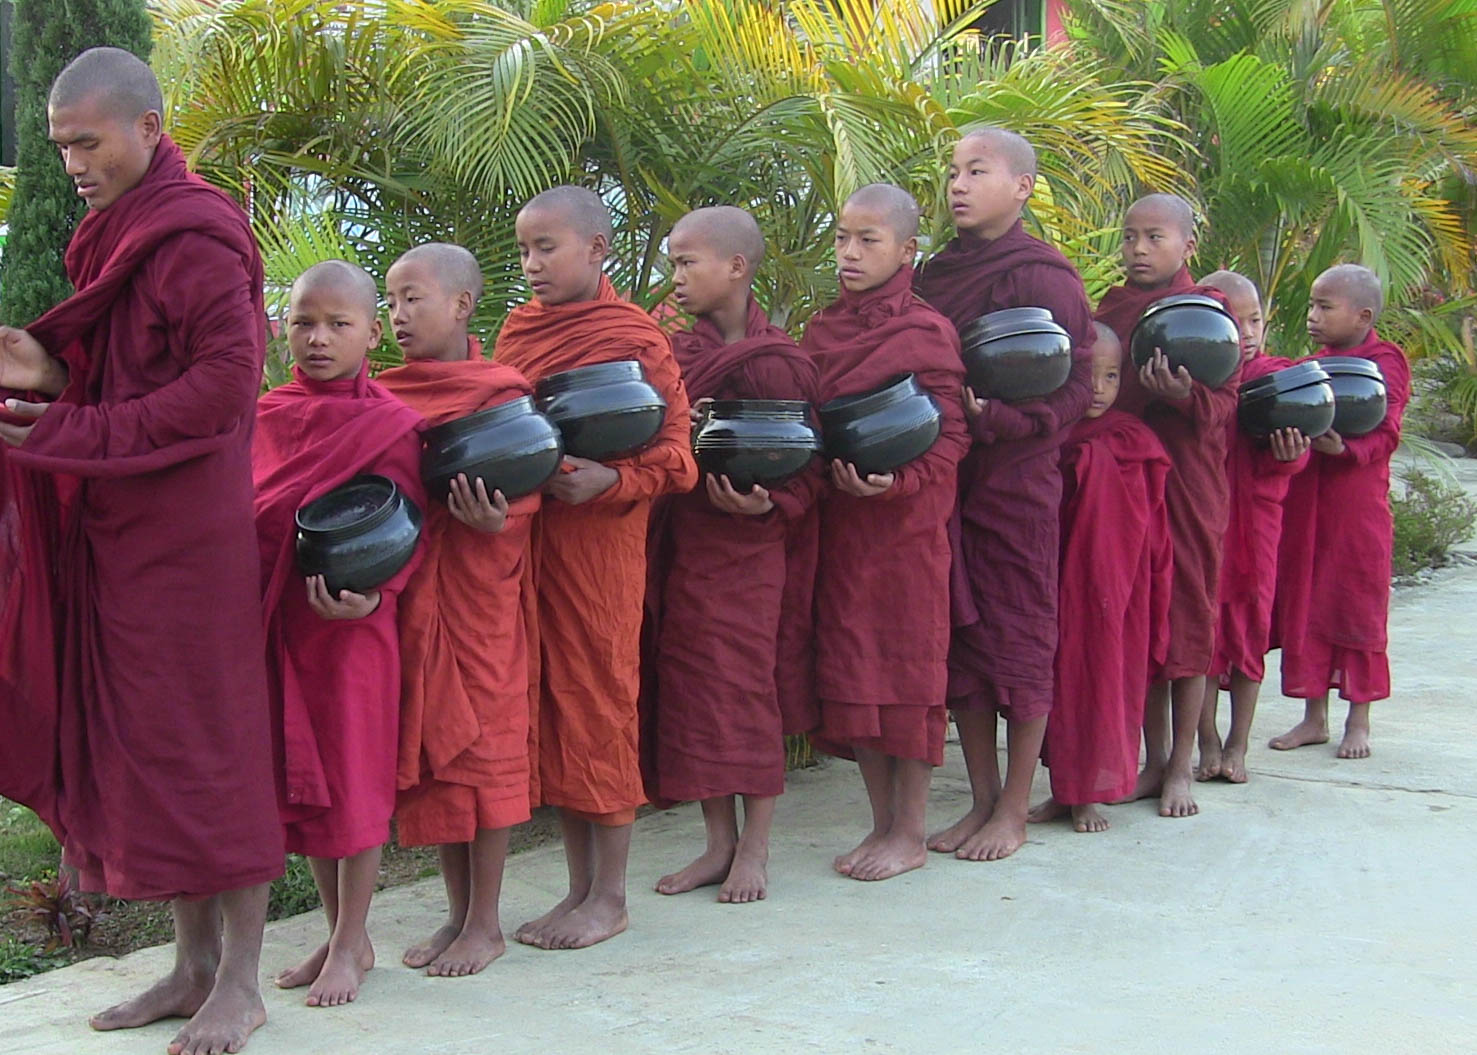 Monks practice of daily alms